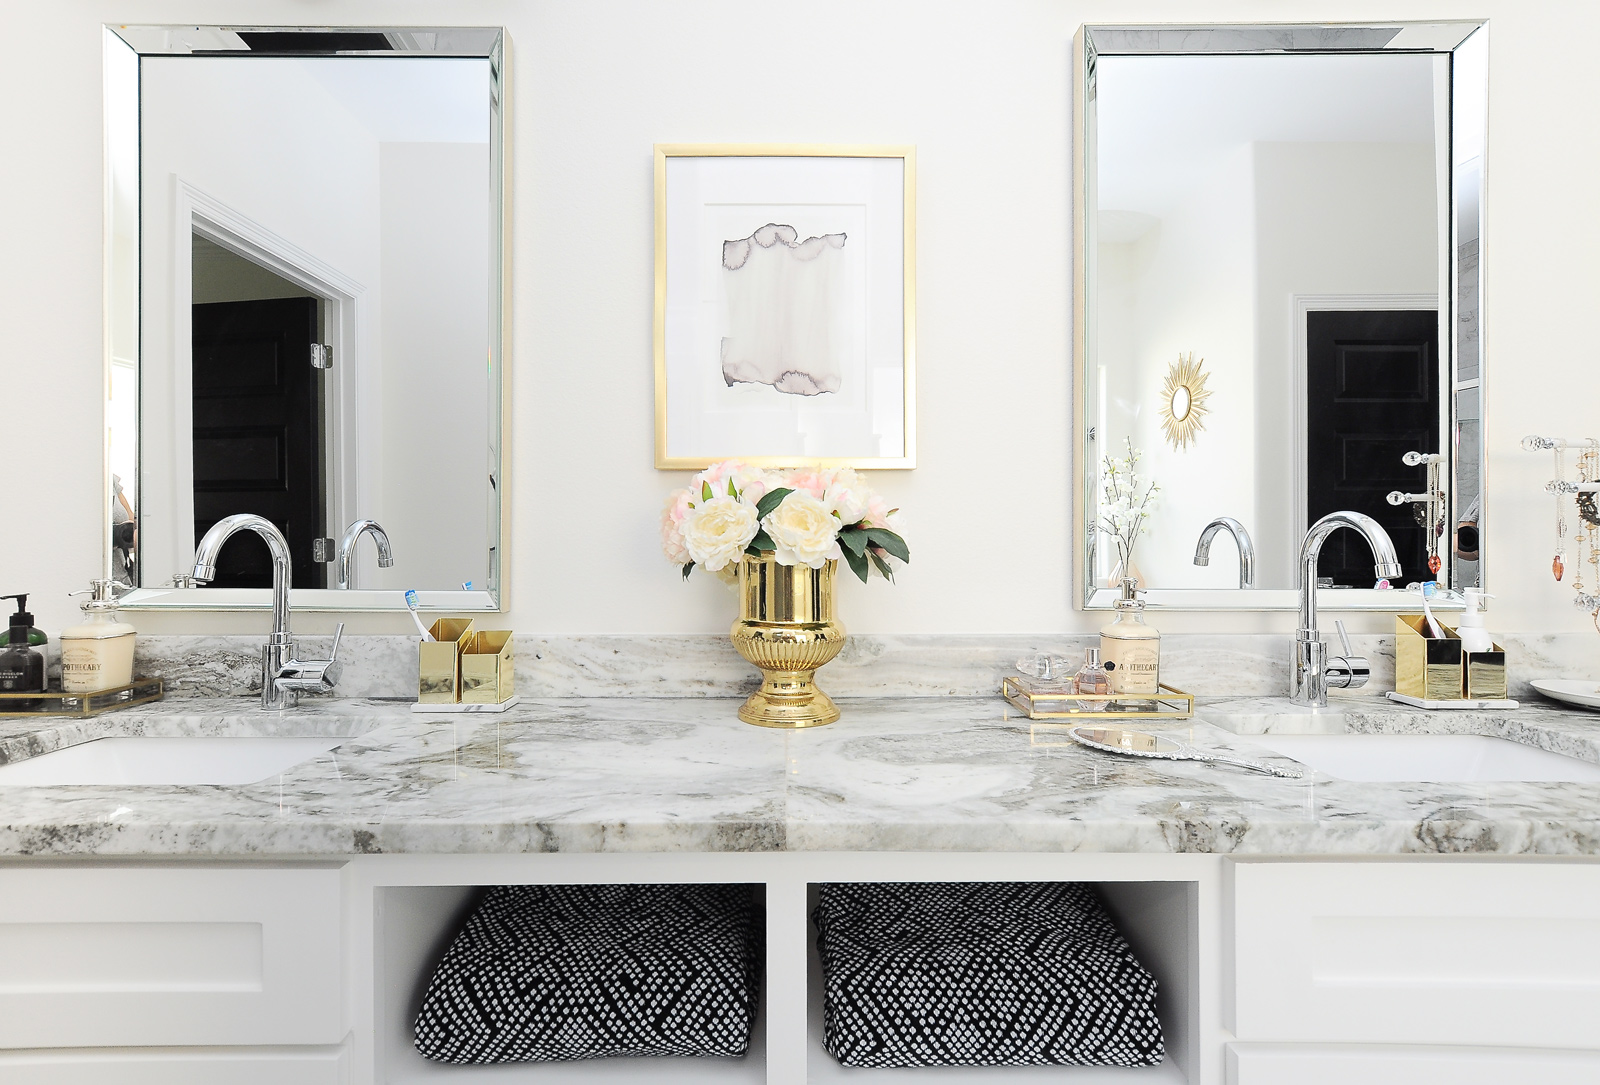 A gorgeous bright white and gold master bathroom with brass lucite cabinet hardware and a luxe hotel vibe. I'd love to get ready in this space!